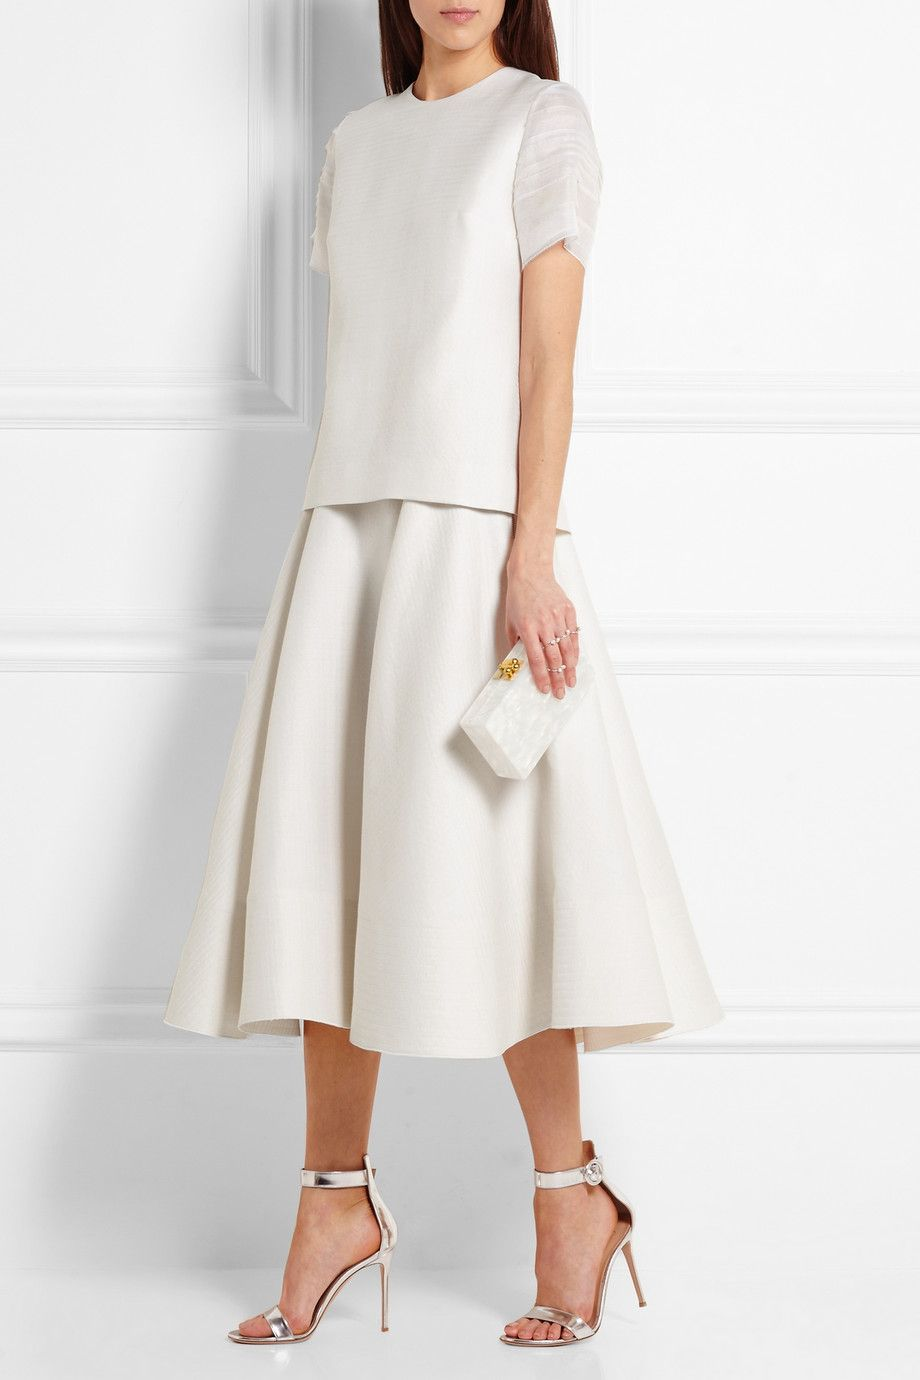 This roskanda skirt and top is available from net a porter for Dresses for registry office wedding